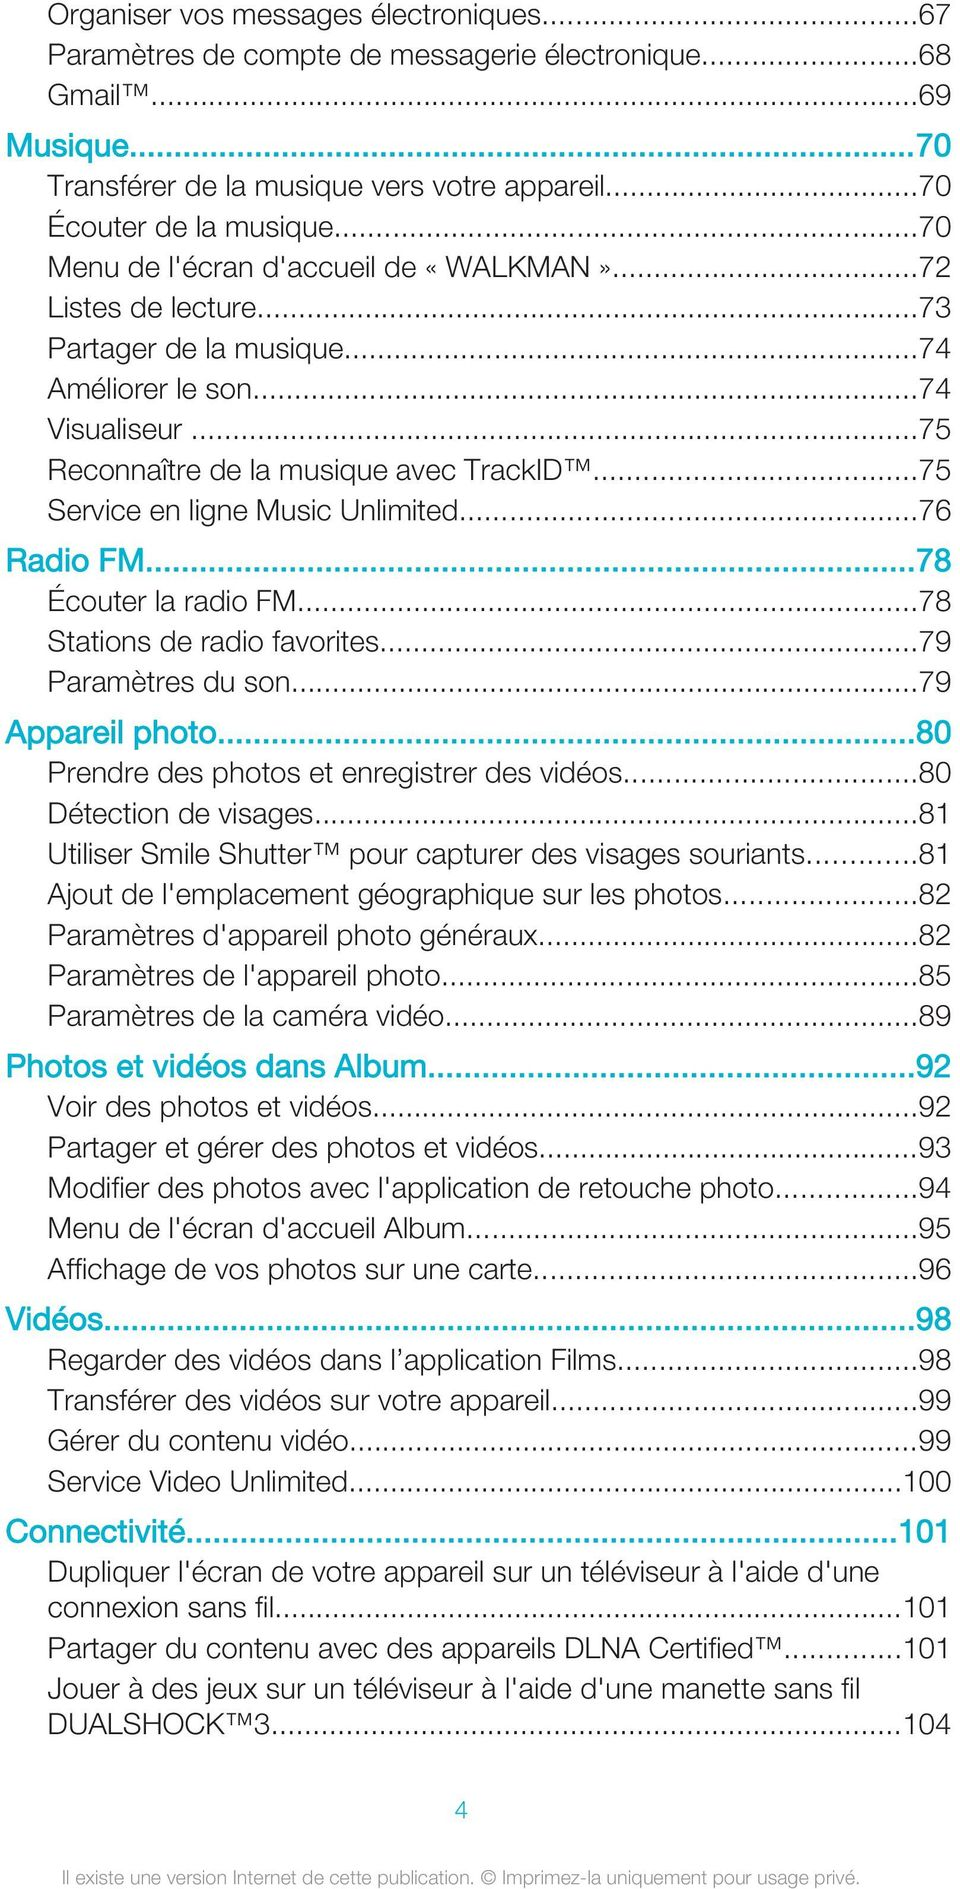 ..75 Service en ligne Music Unlimited...76 Radio FM...78 Écouter la radio FM...78 Stations de radio favorites...79 Paramètres du son...79 Appareil photo.